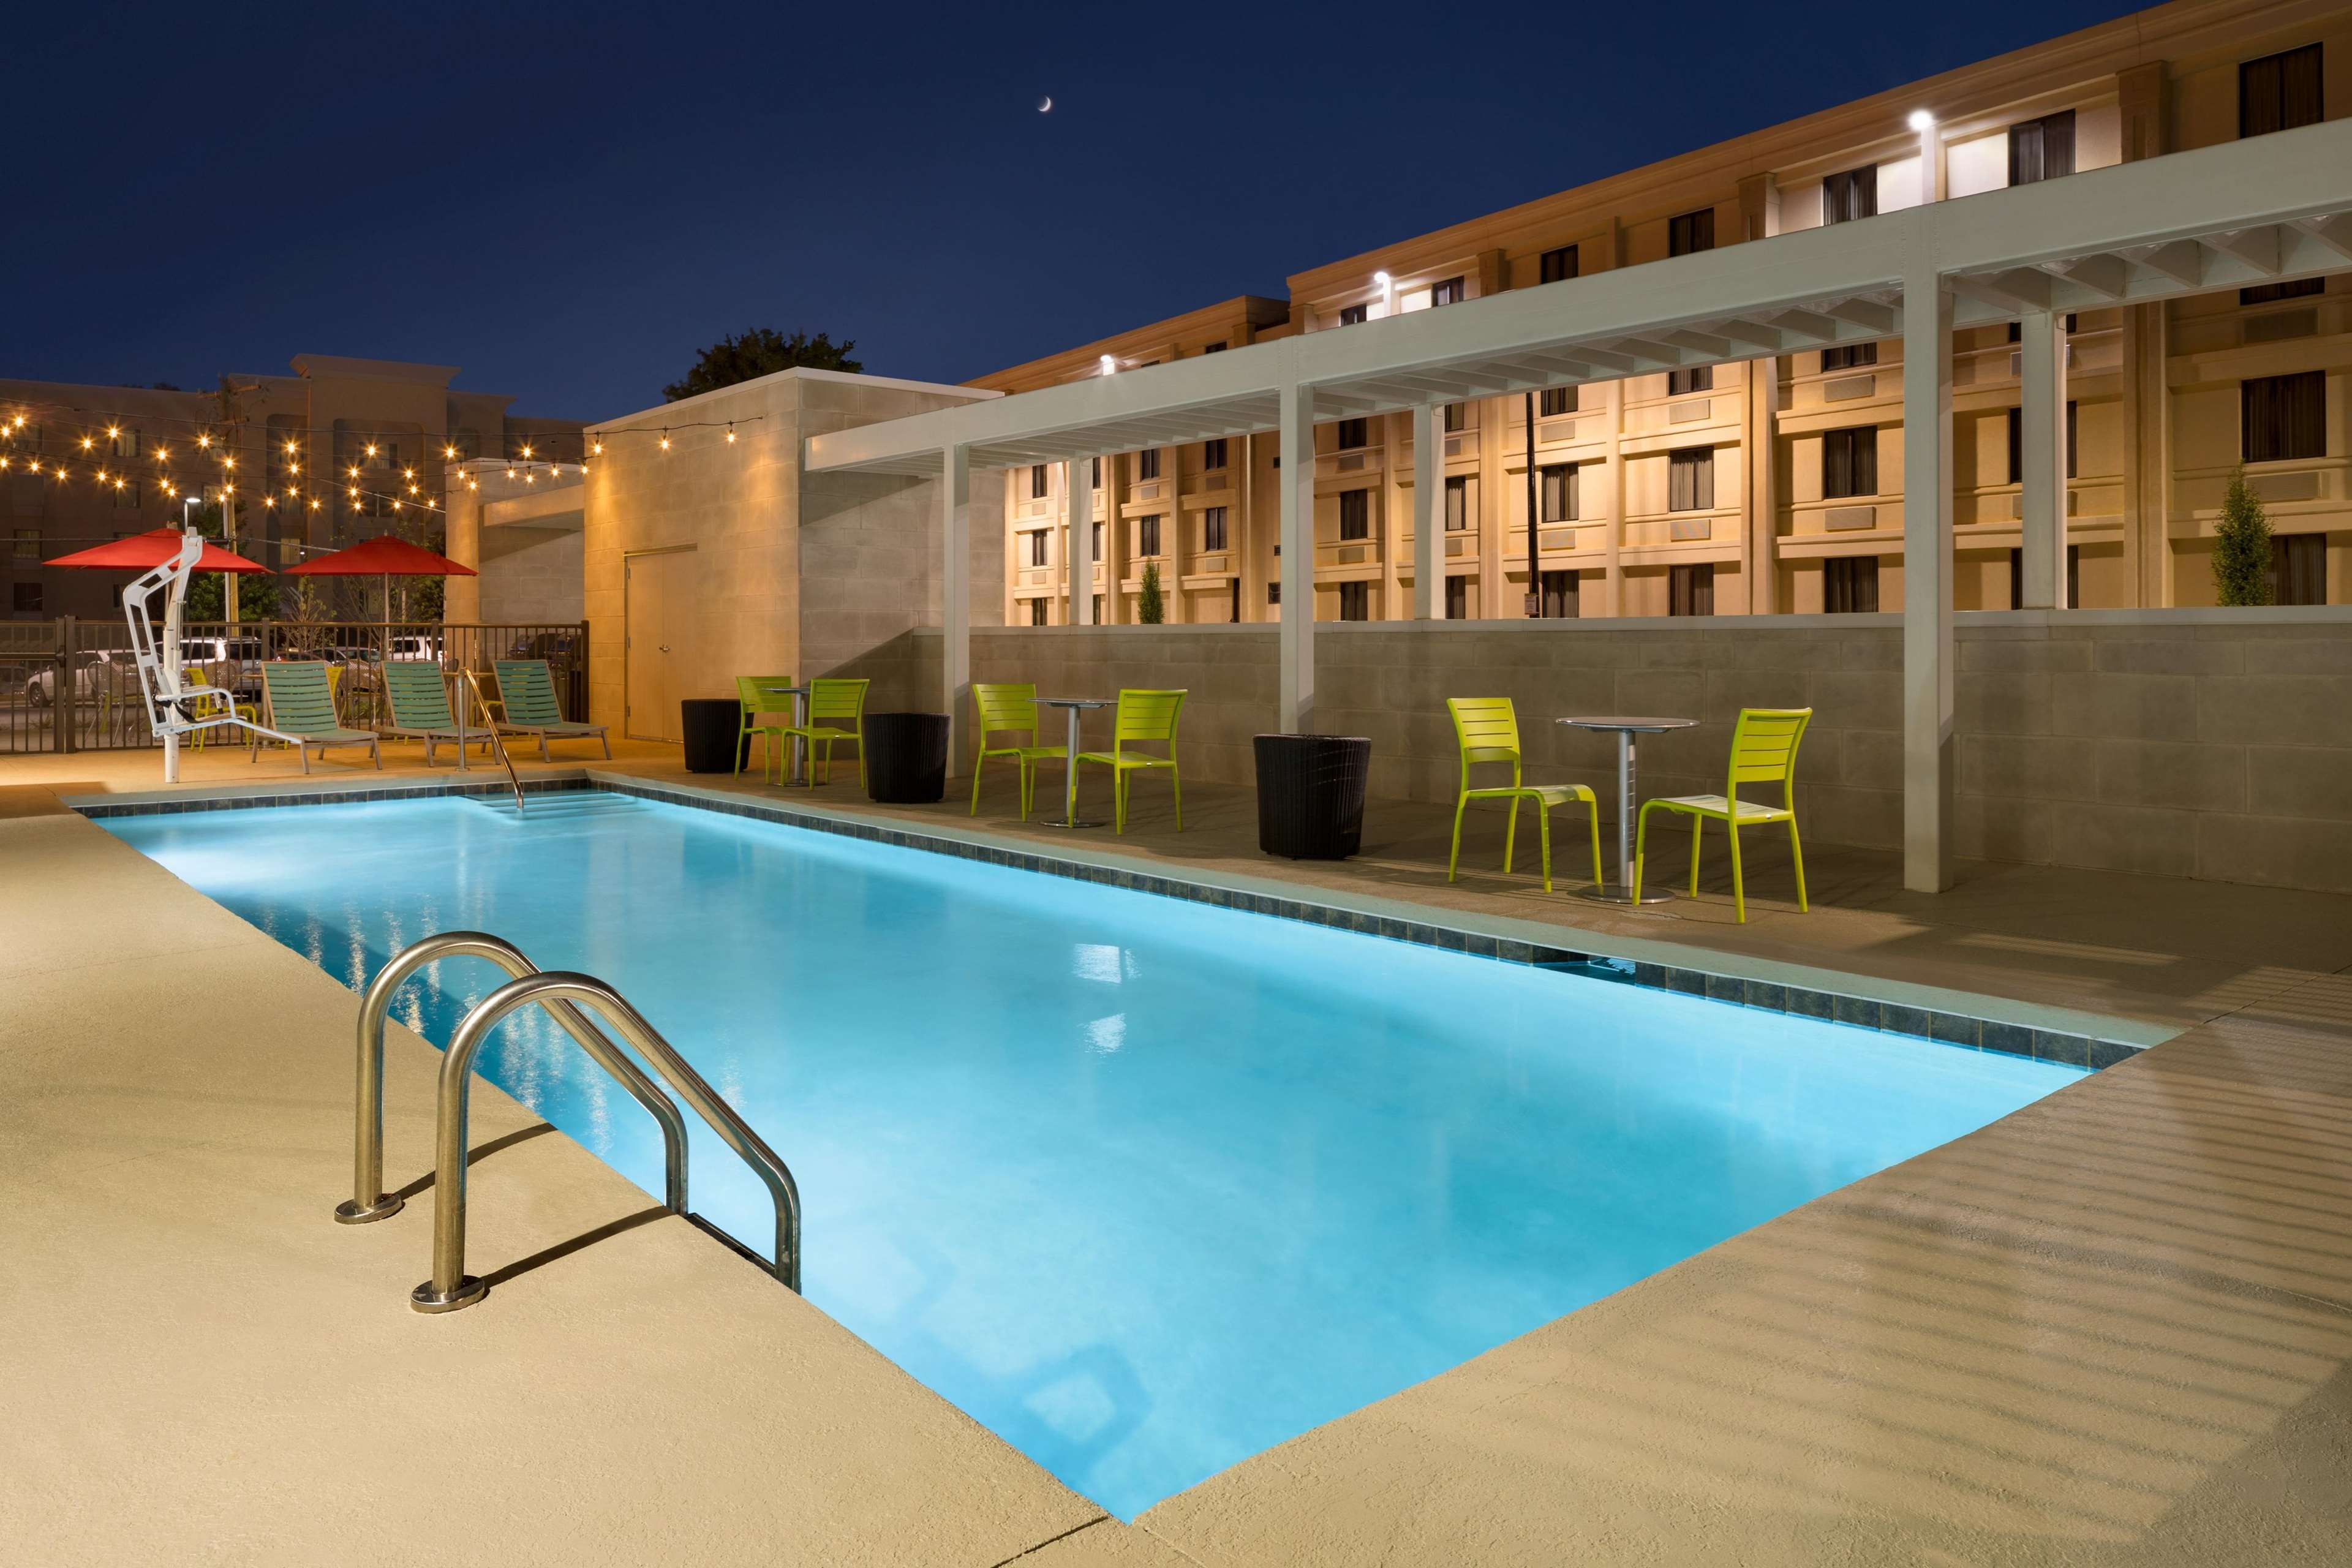 Home2 Suites by Hilton Charlotte Airport | Phone 704-398-2933 ...